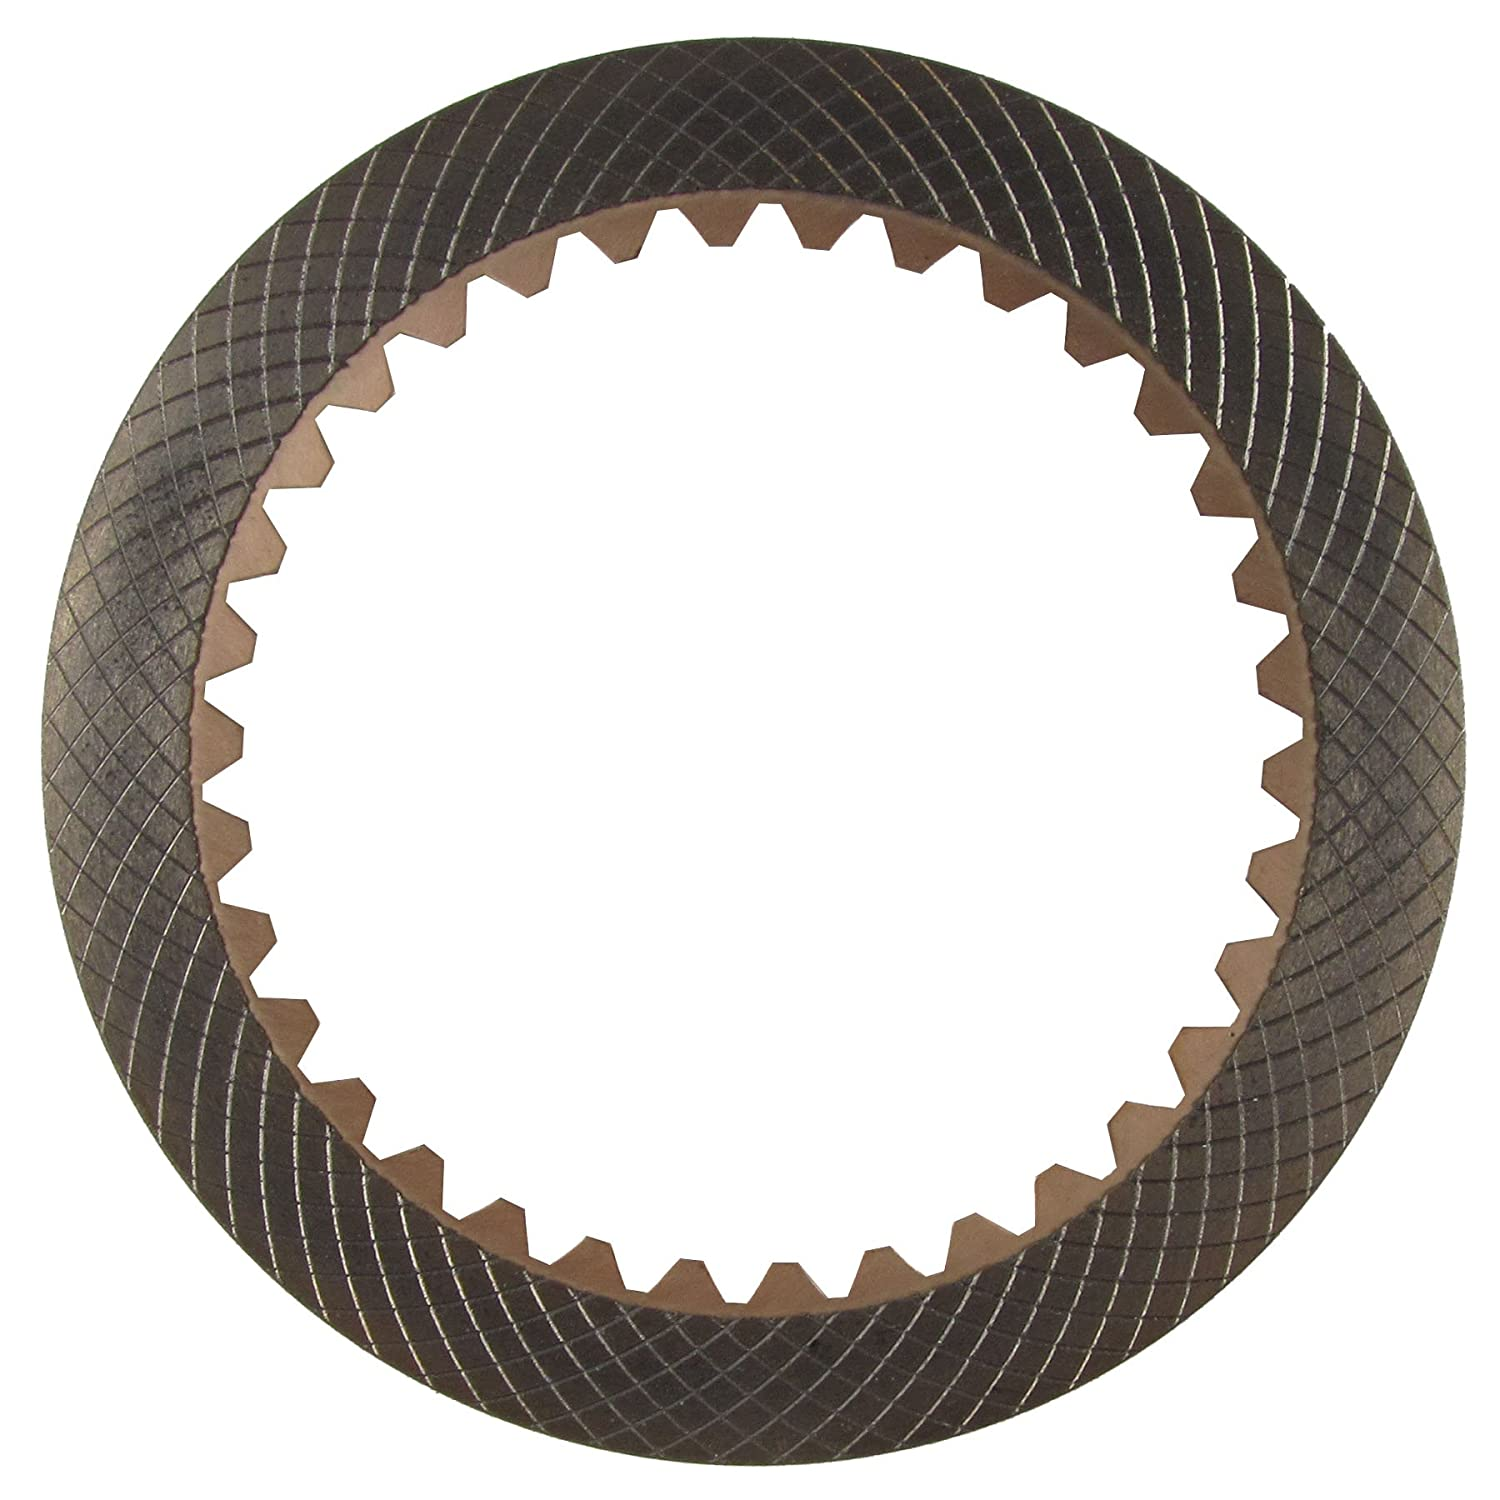 Friction Clutch Grader GEARCO Champion by Ranking NEW before selling ☆ TOP18 Alto 19435 Replaced